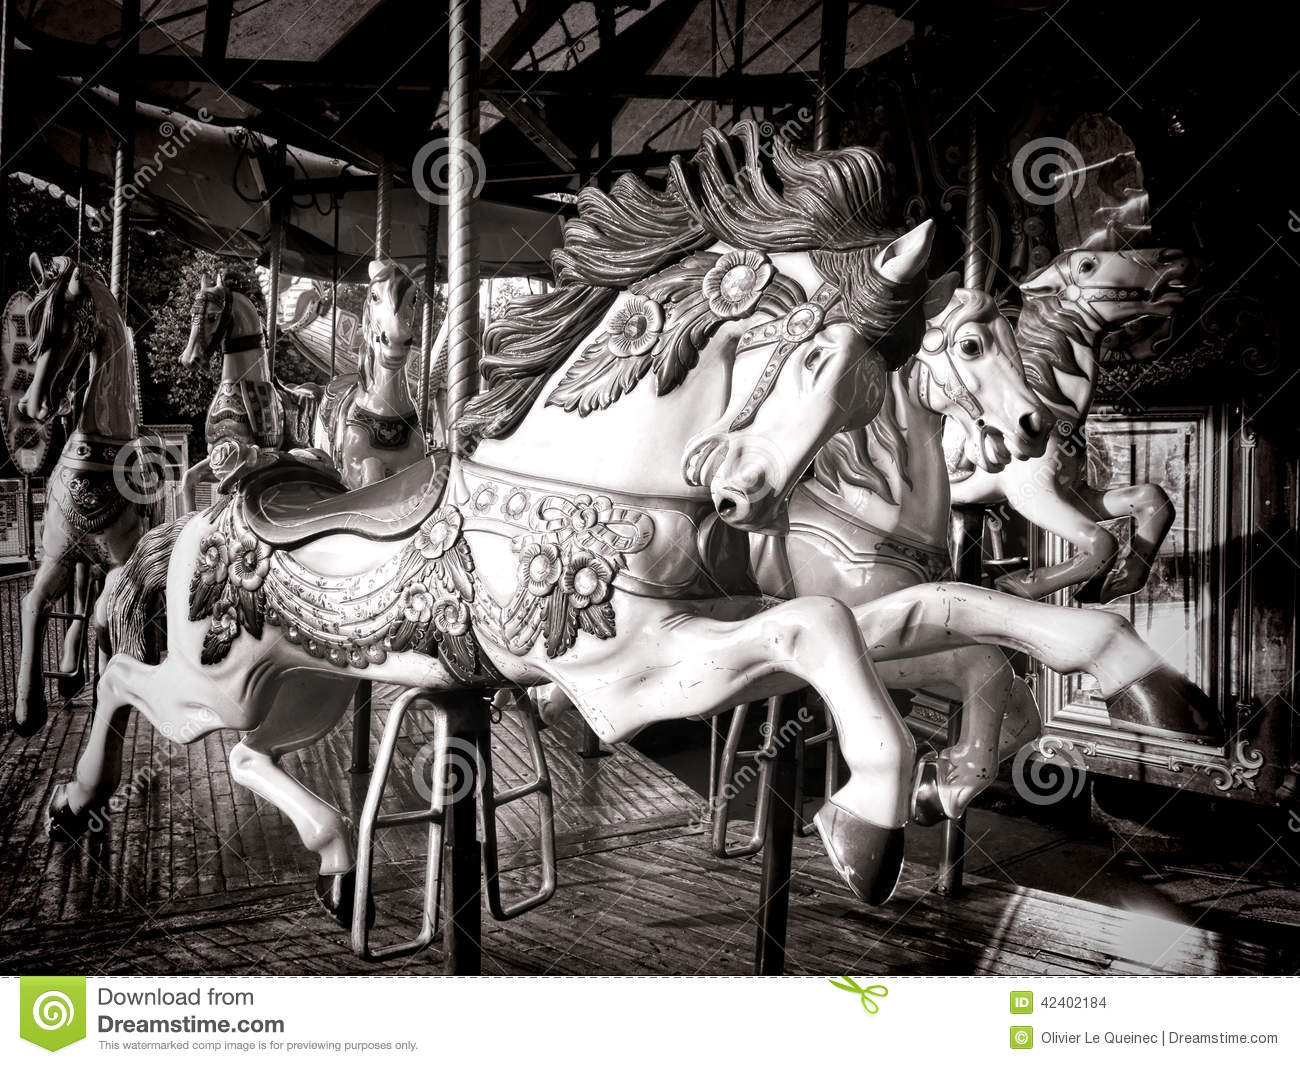 Vintage carnival ride www imgarcade com online image arcade - Old Carousel Horse Merry Go Round Amusement Ride Stock